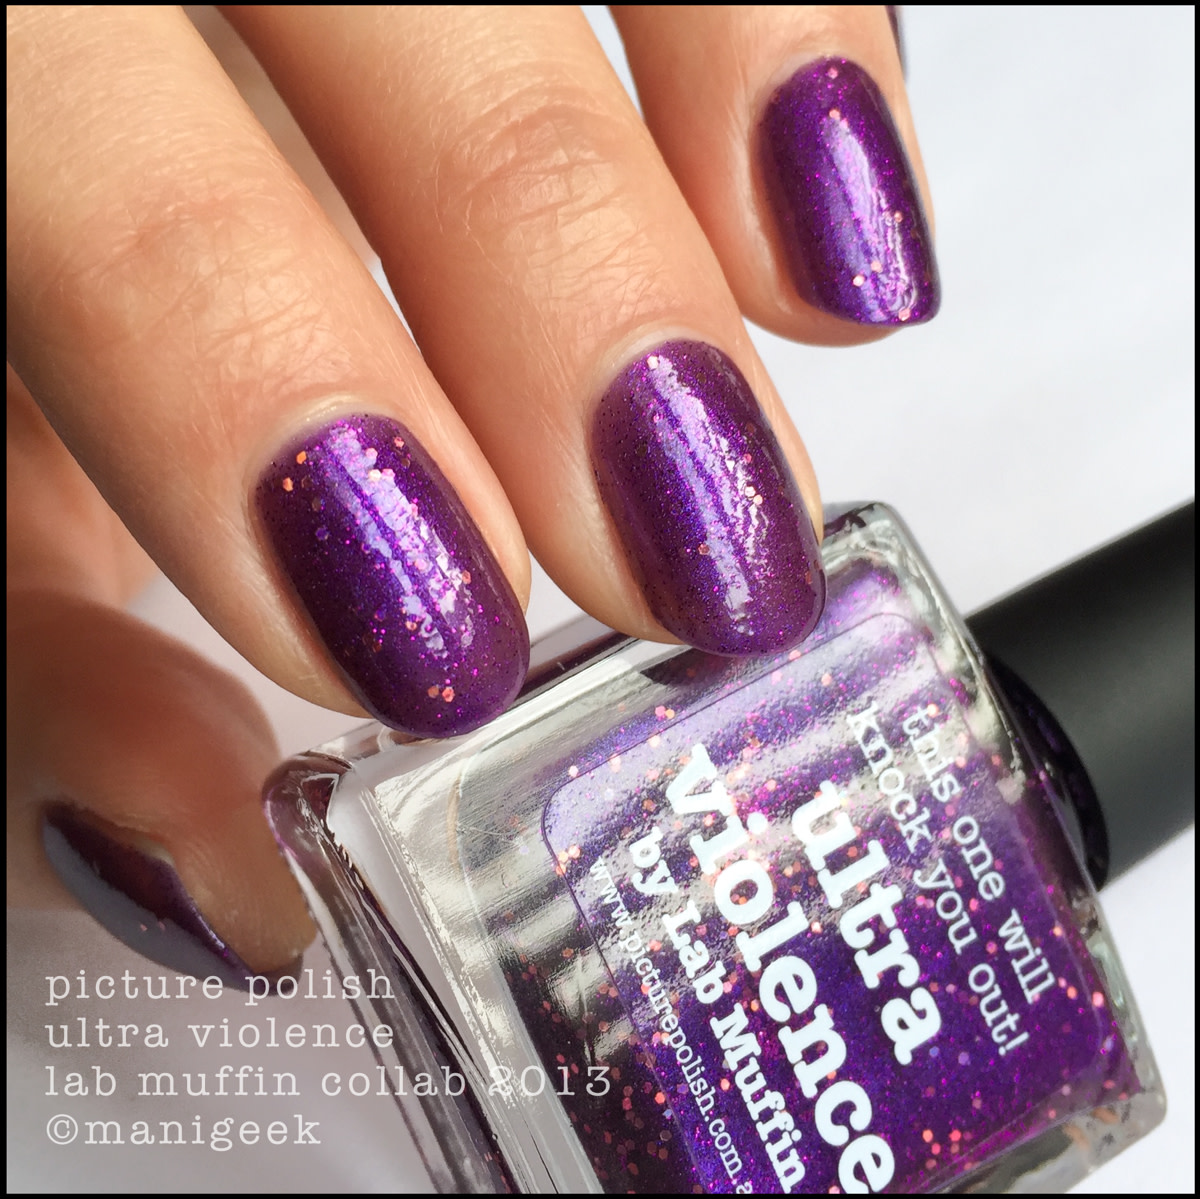 Picture Polish Ultra Violence by Lab Muffin NOTD